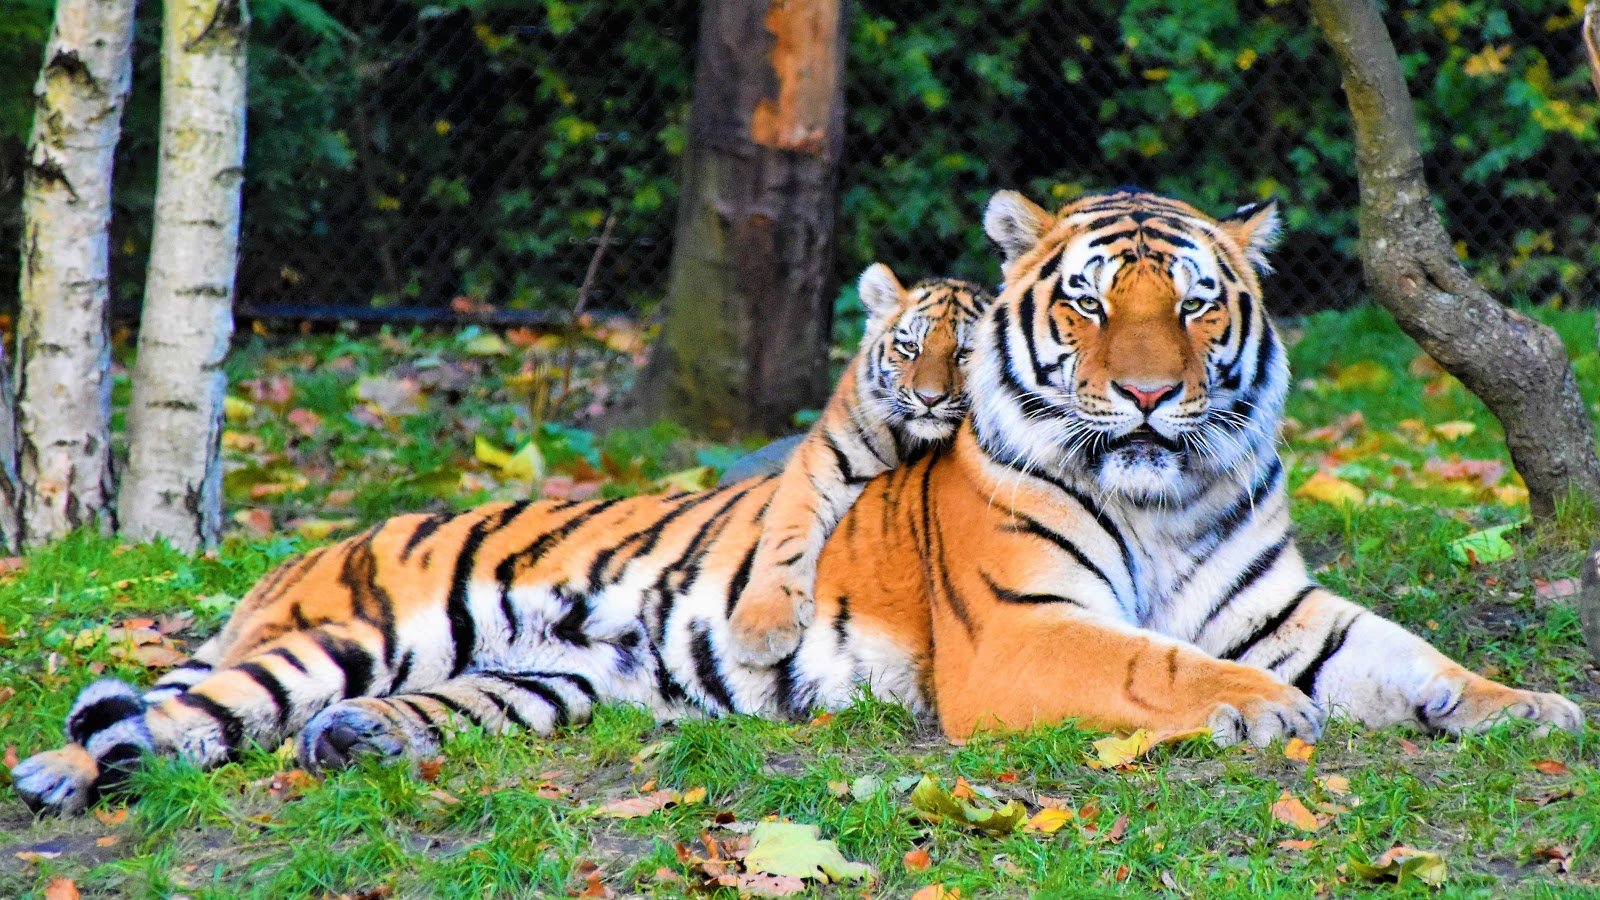 photo-of-tiger-and-cub-lying-down-on-grass-pictures